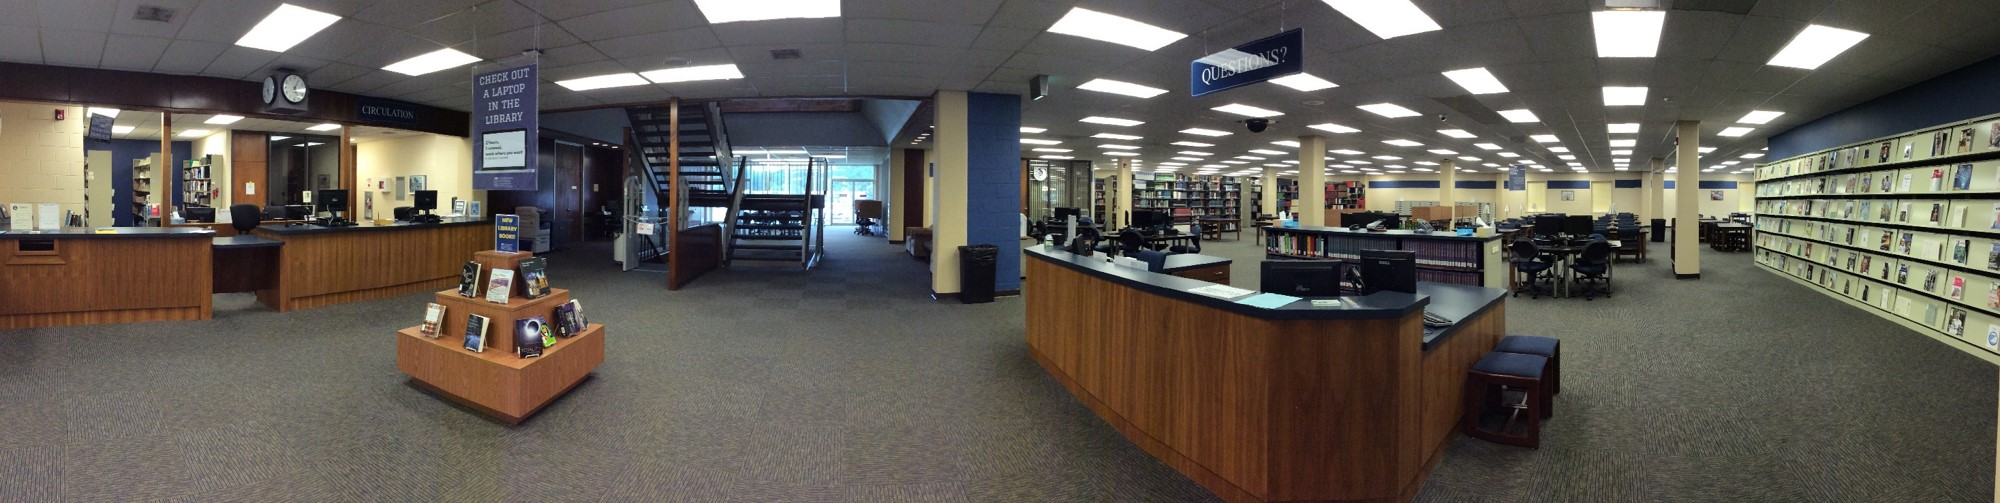 Panorama of the CSU Library's Main Level